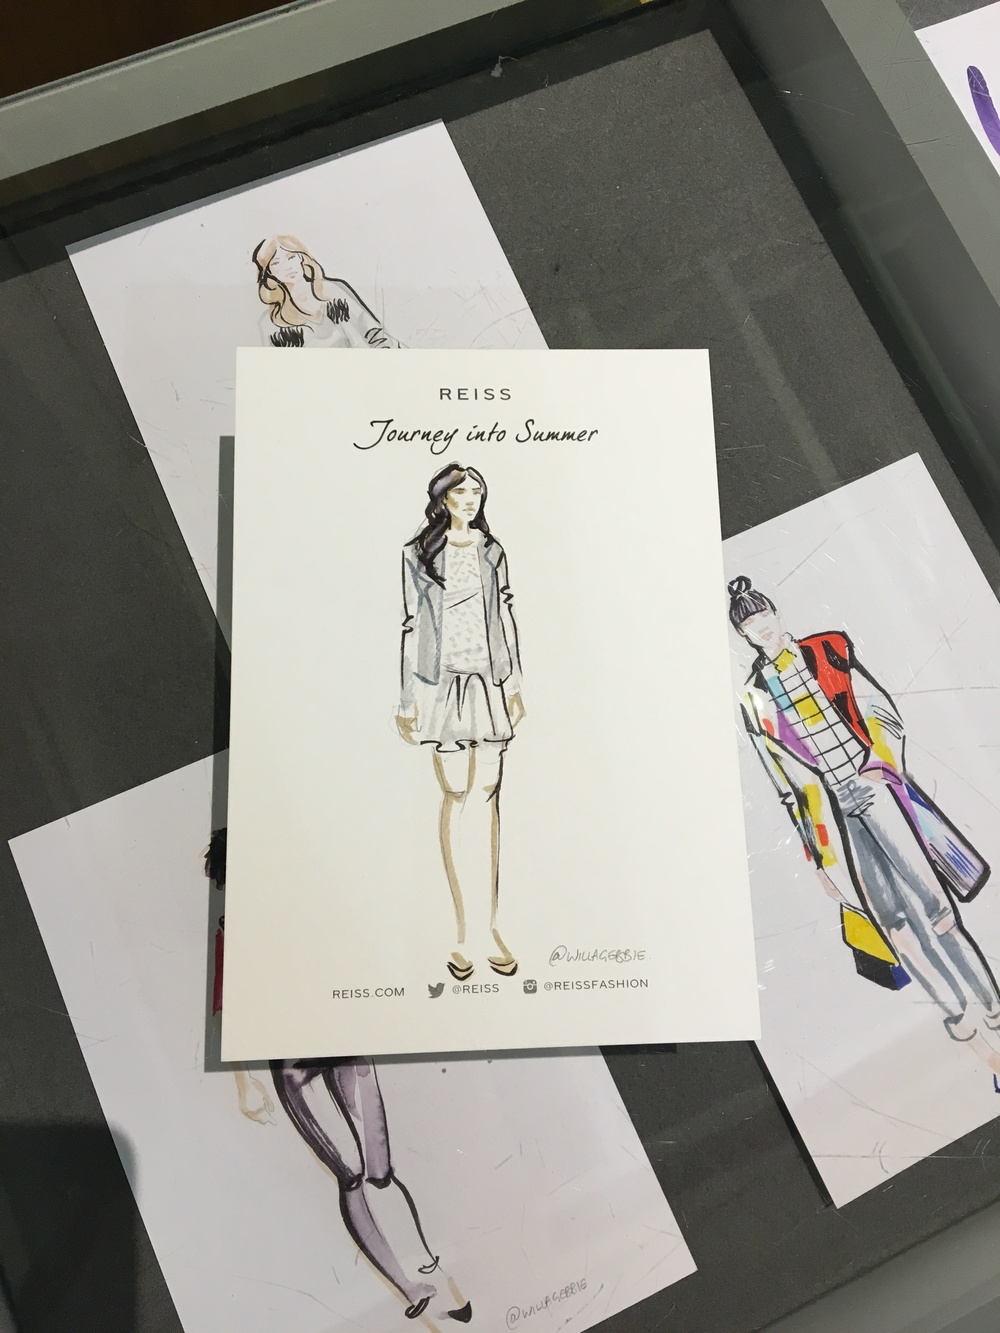 Live Fashion Illustration at Reiss by fashion illustrator Willa Gebbie.